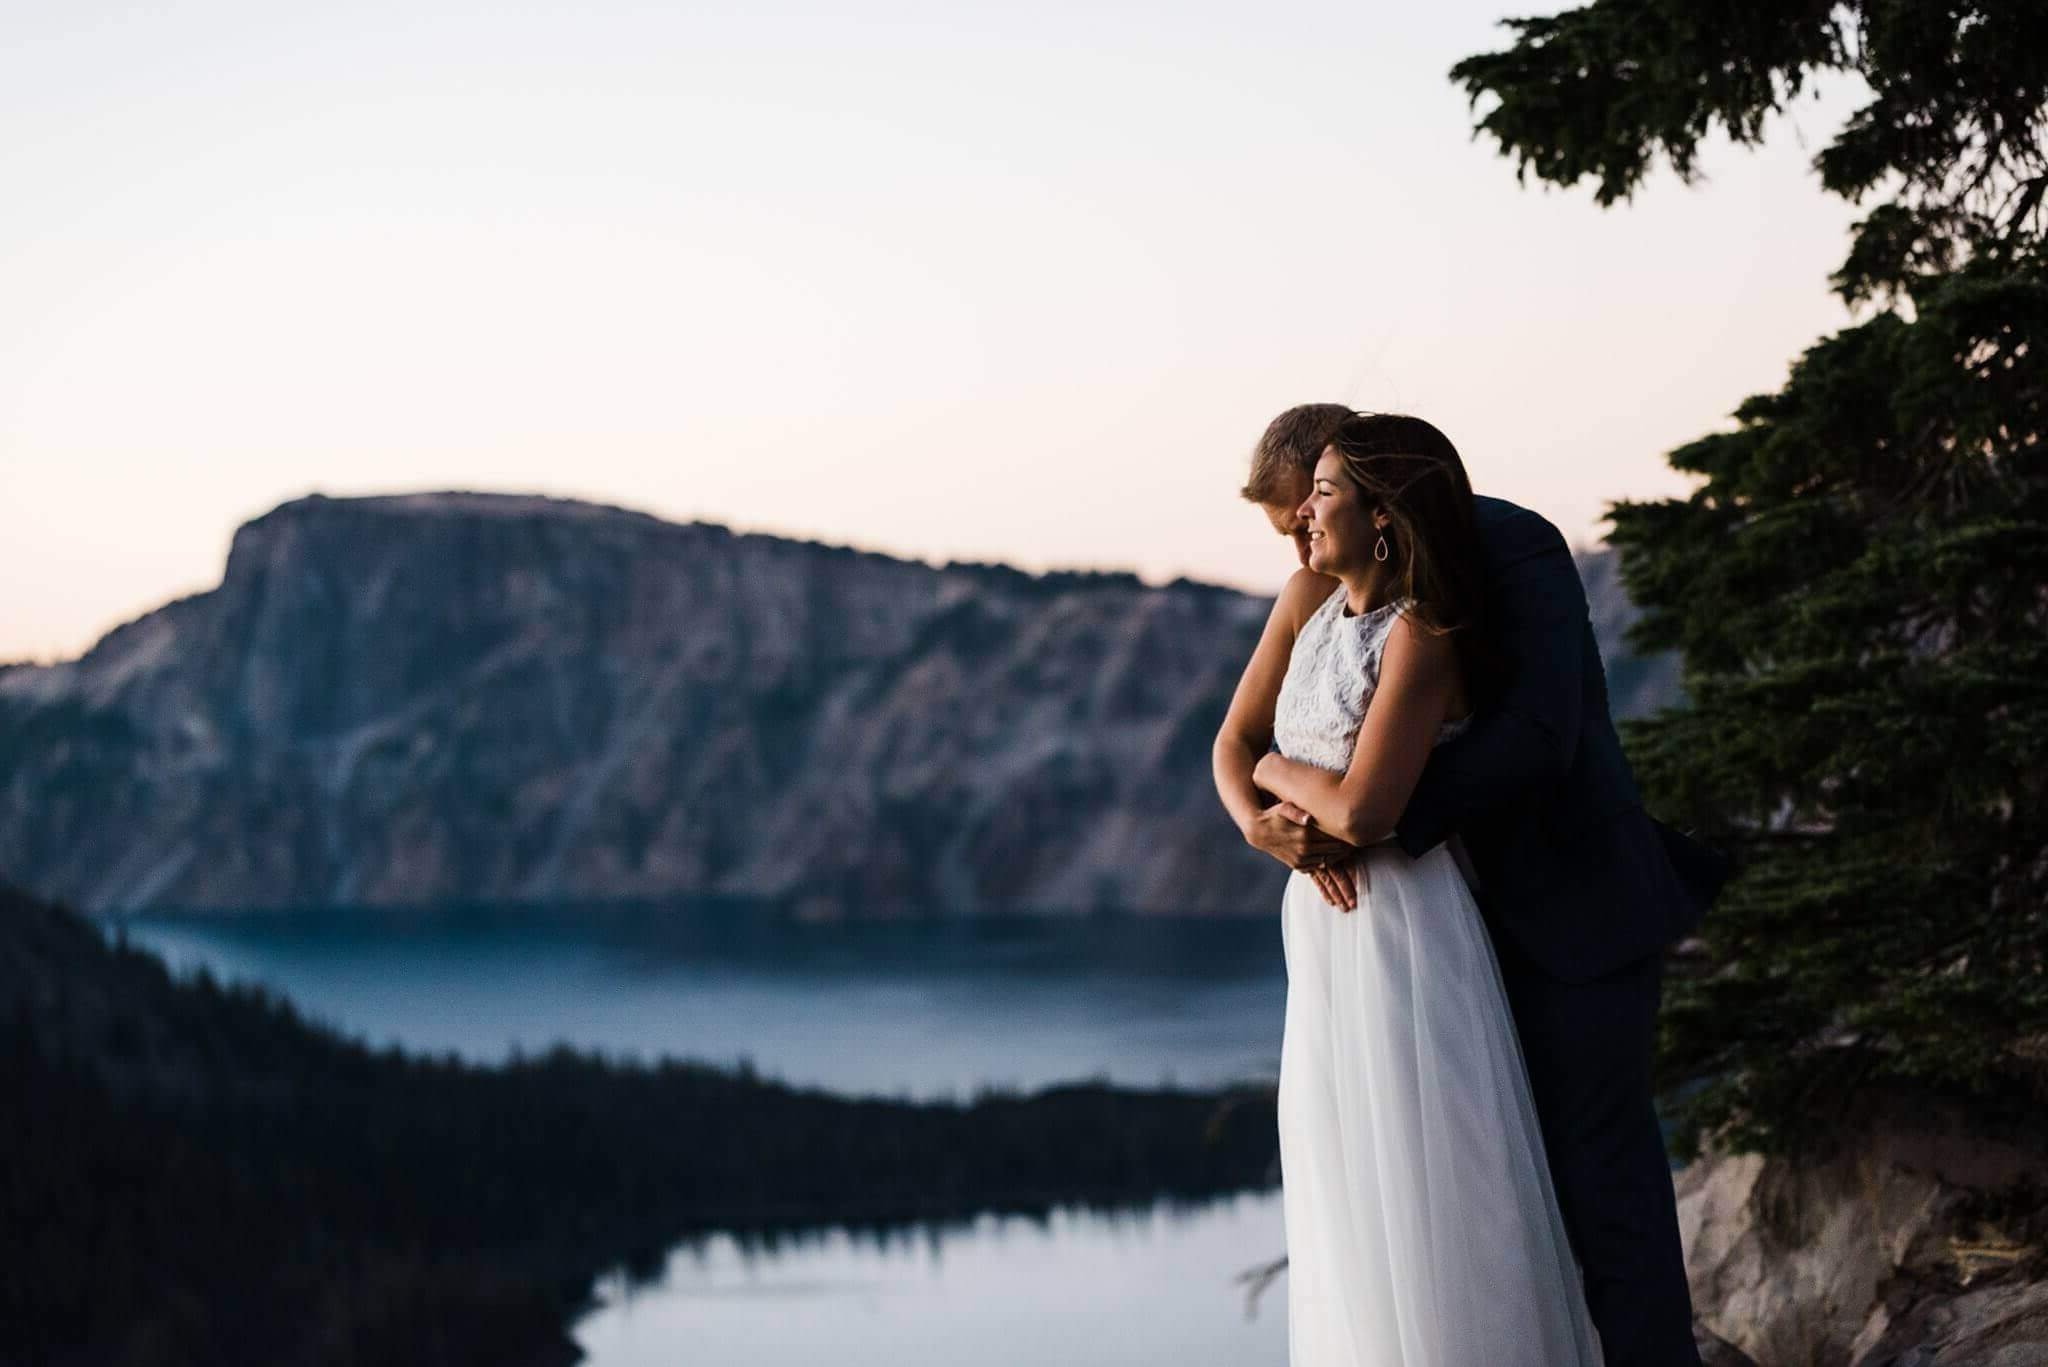 crater lake national park, adventure elopement, intimate wedding